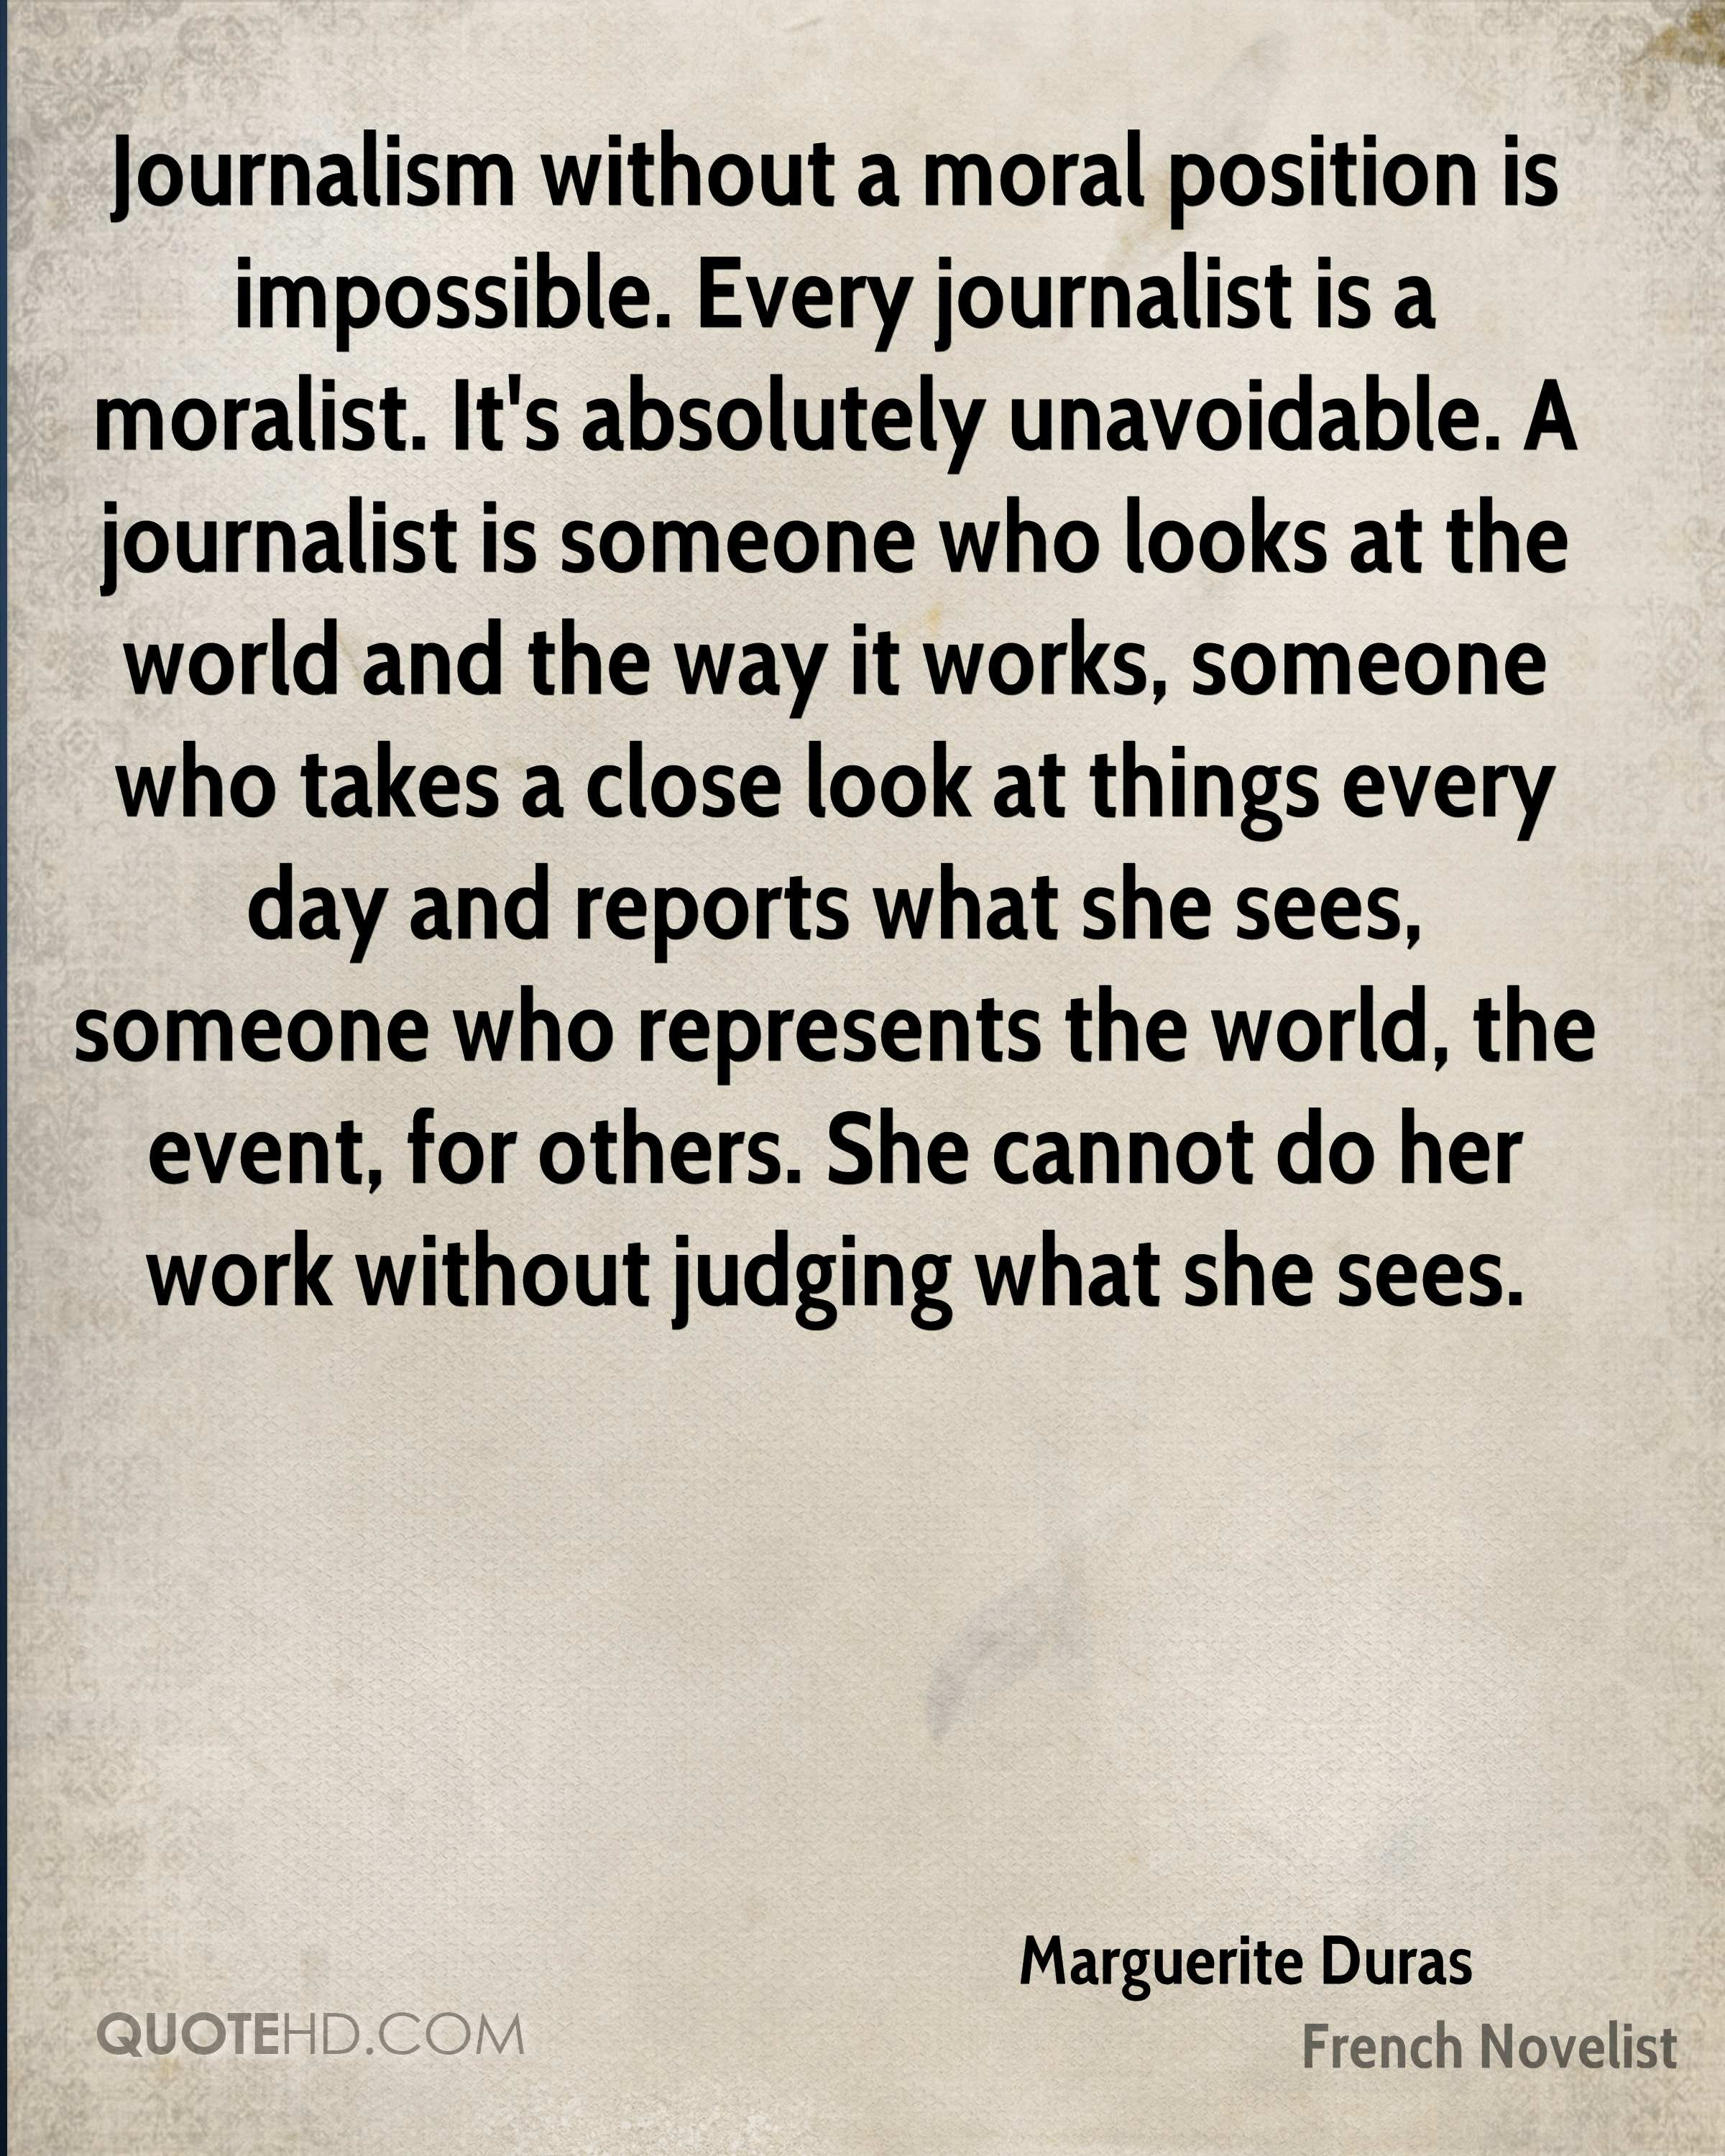 Journalism without a moral position is impossible. Every journalist is a moralist. It's absolutely unavoidable. A journalist is someone who looks at the world and the way it works, someone who takes a close look at things every day and reports what she sees, someone who represents the world, the event, for others. She cannot do her work without judging what she sees.